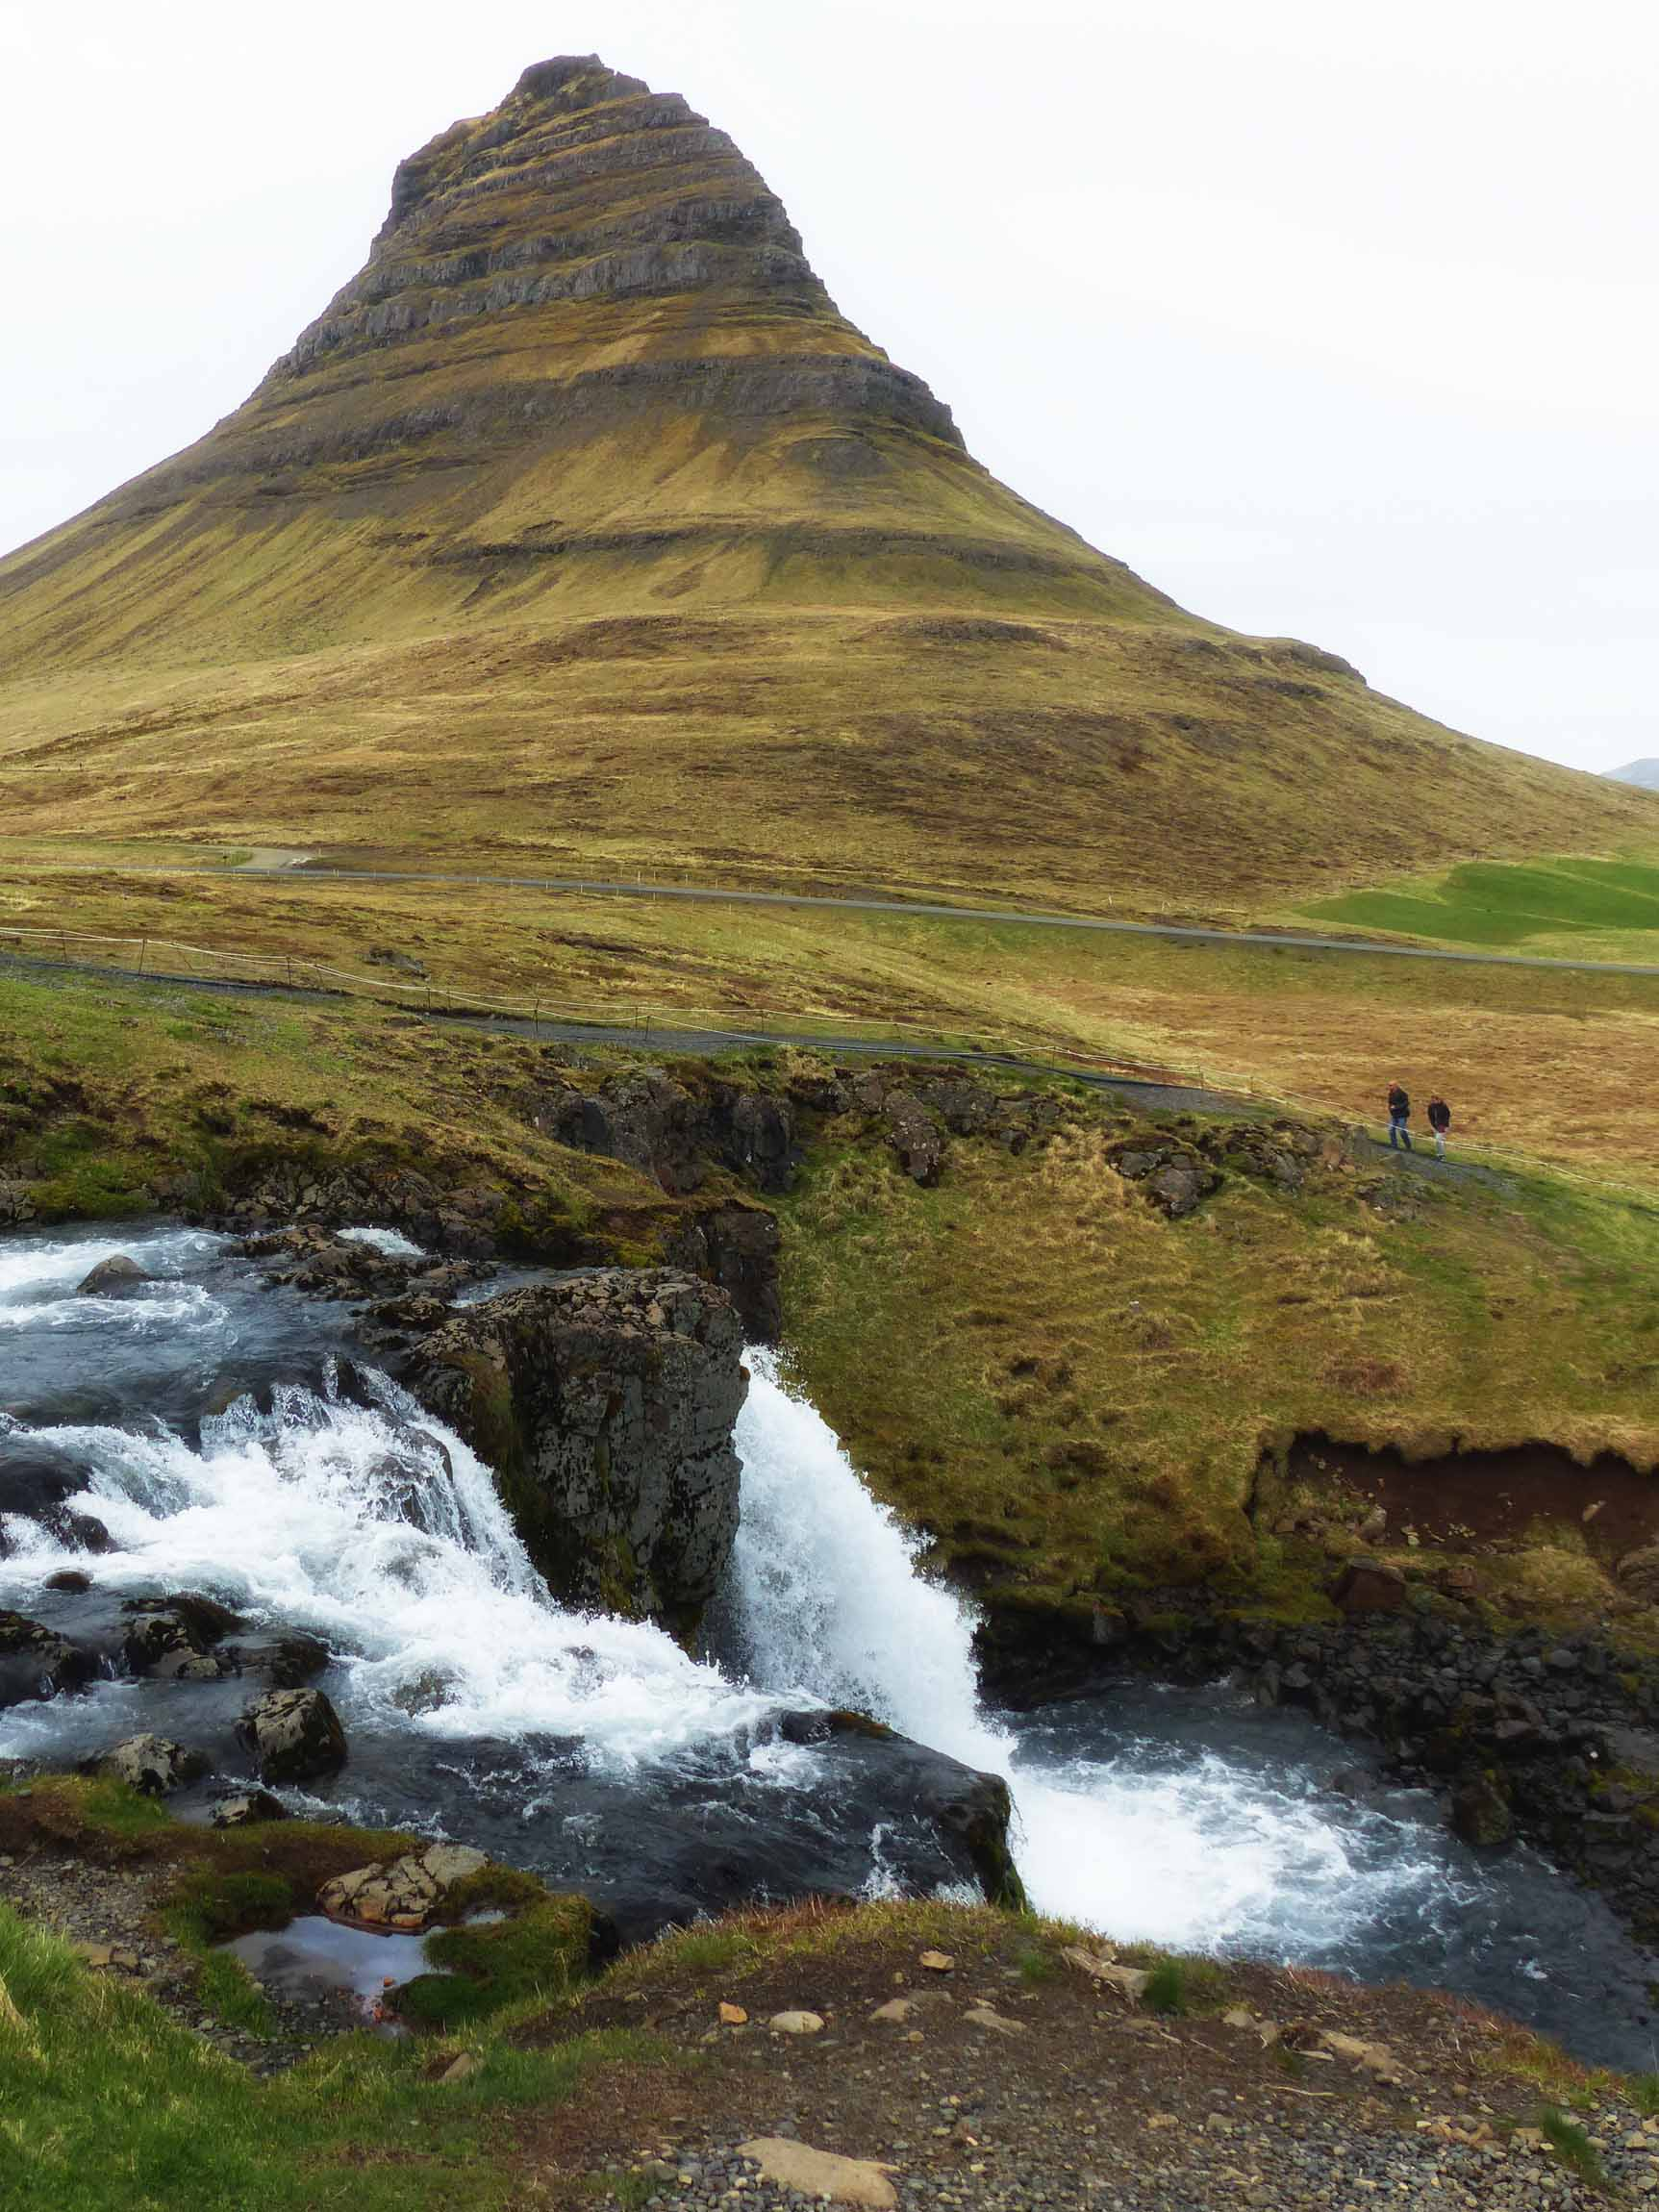 Waterfall in front of conical mountain